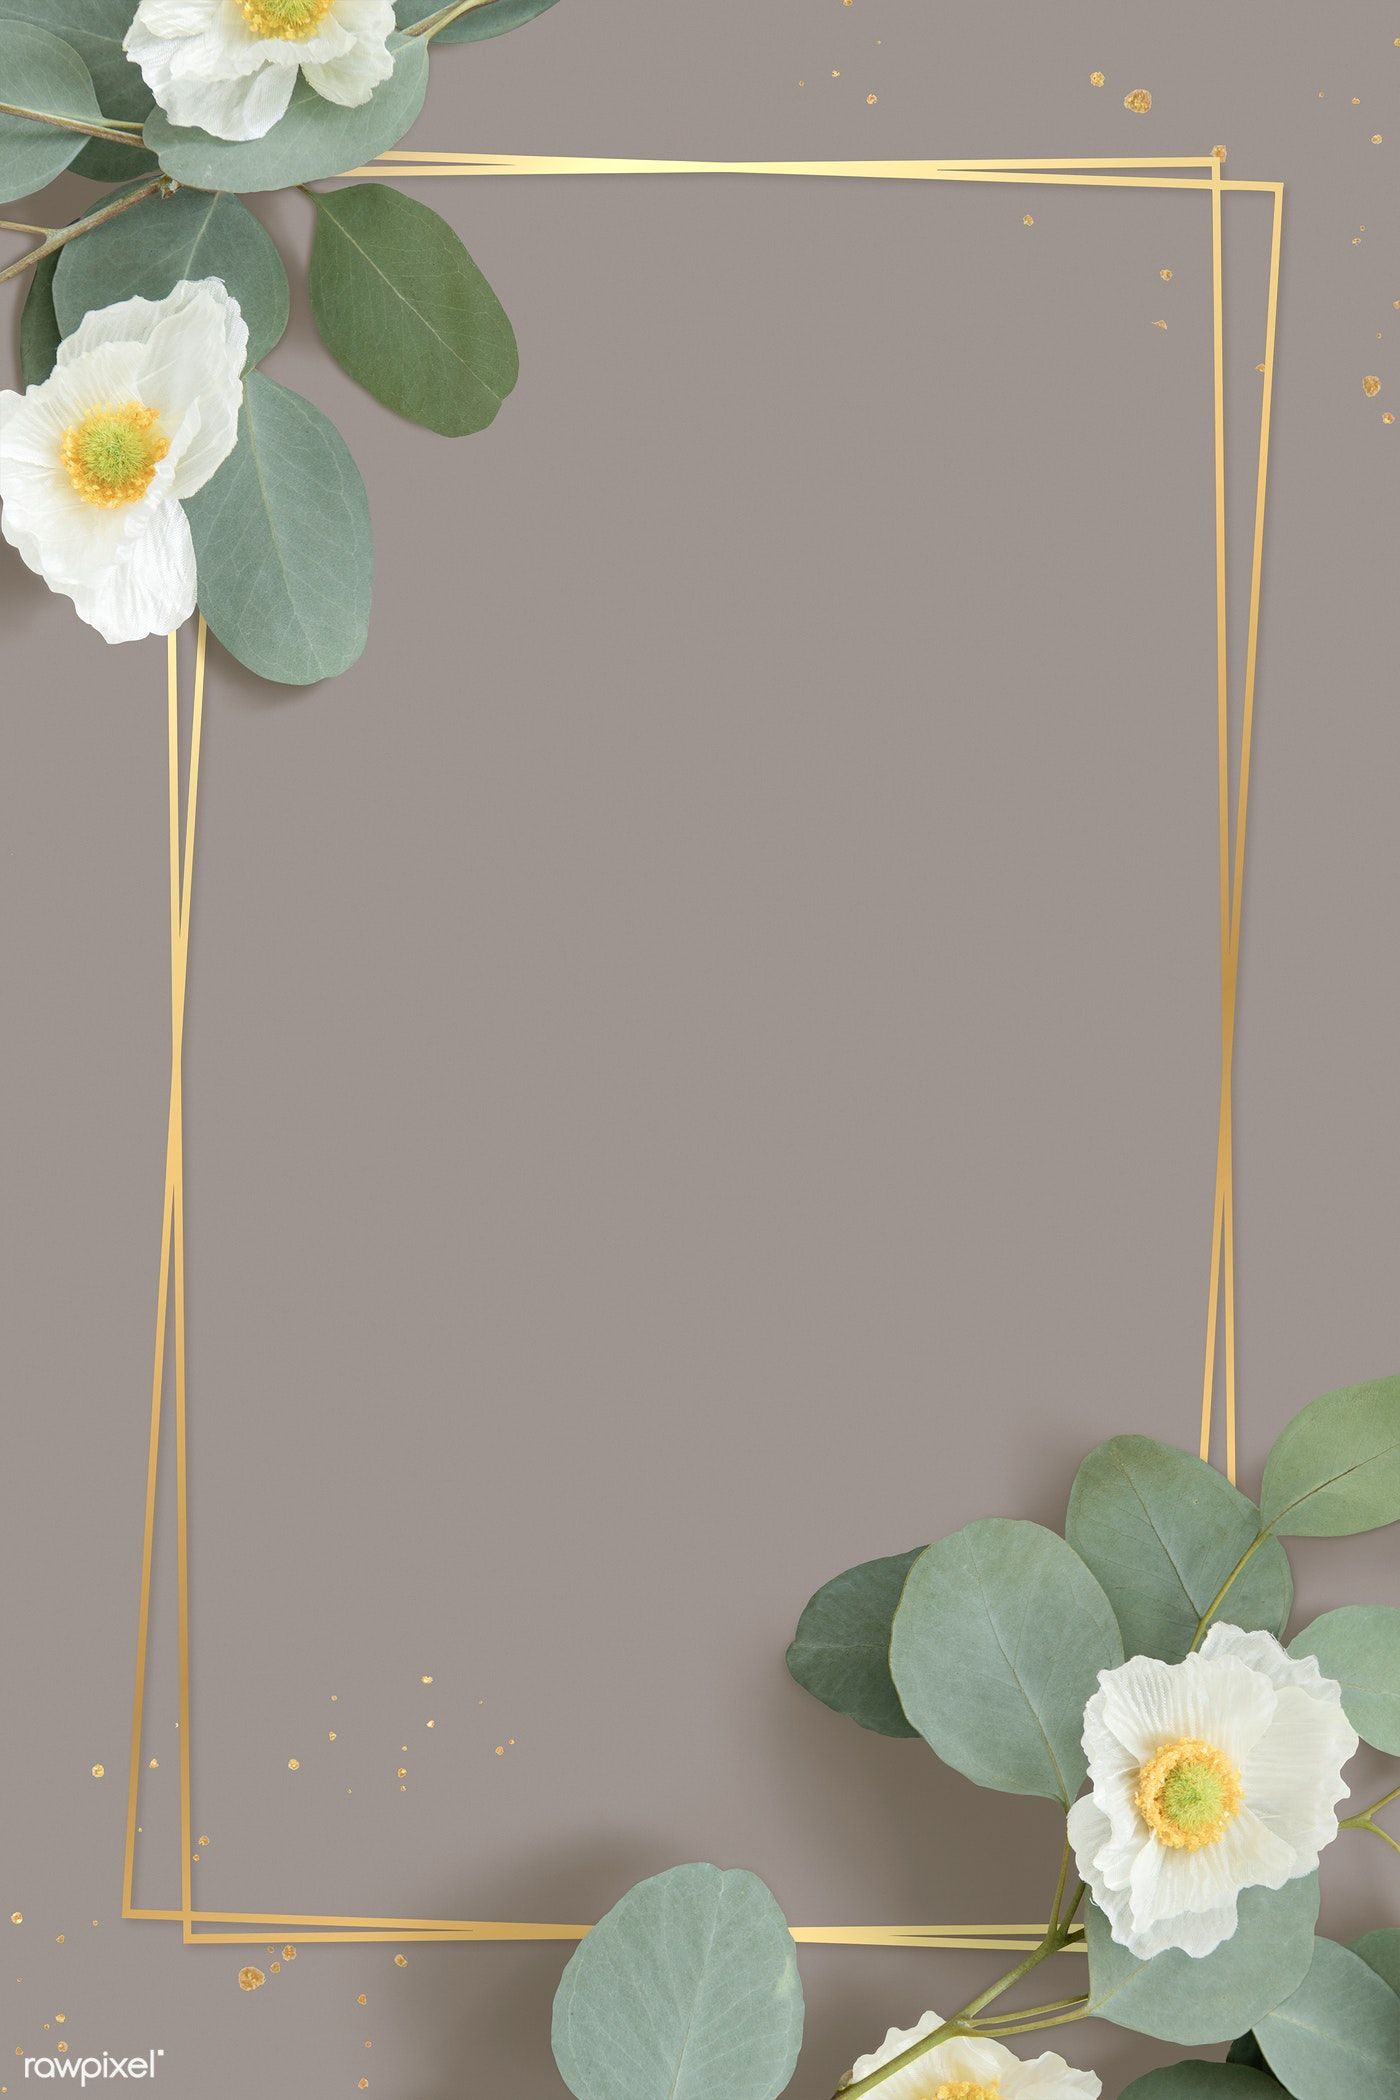 Download Premium Image Of Golden Rectangle Cherokee Rose Frame